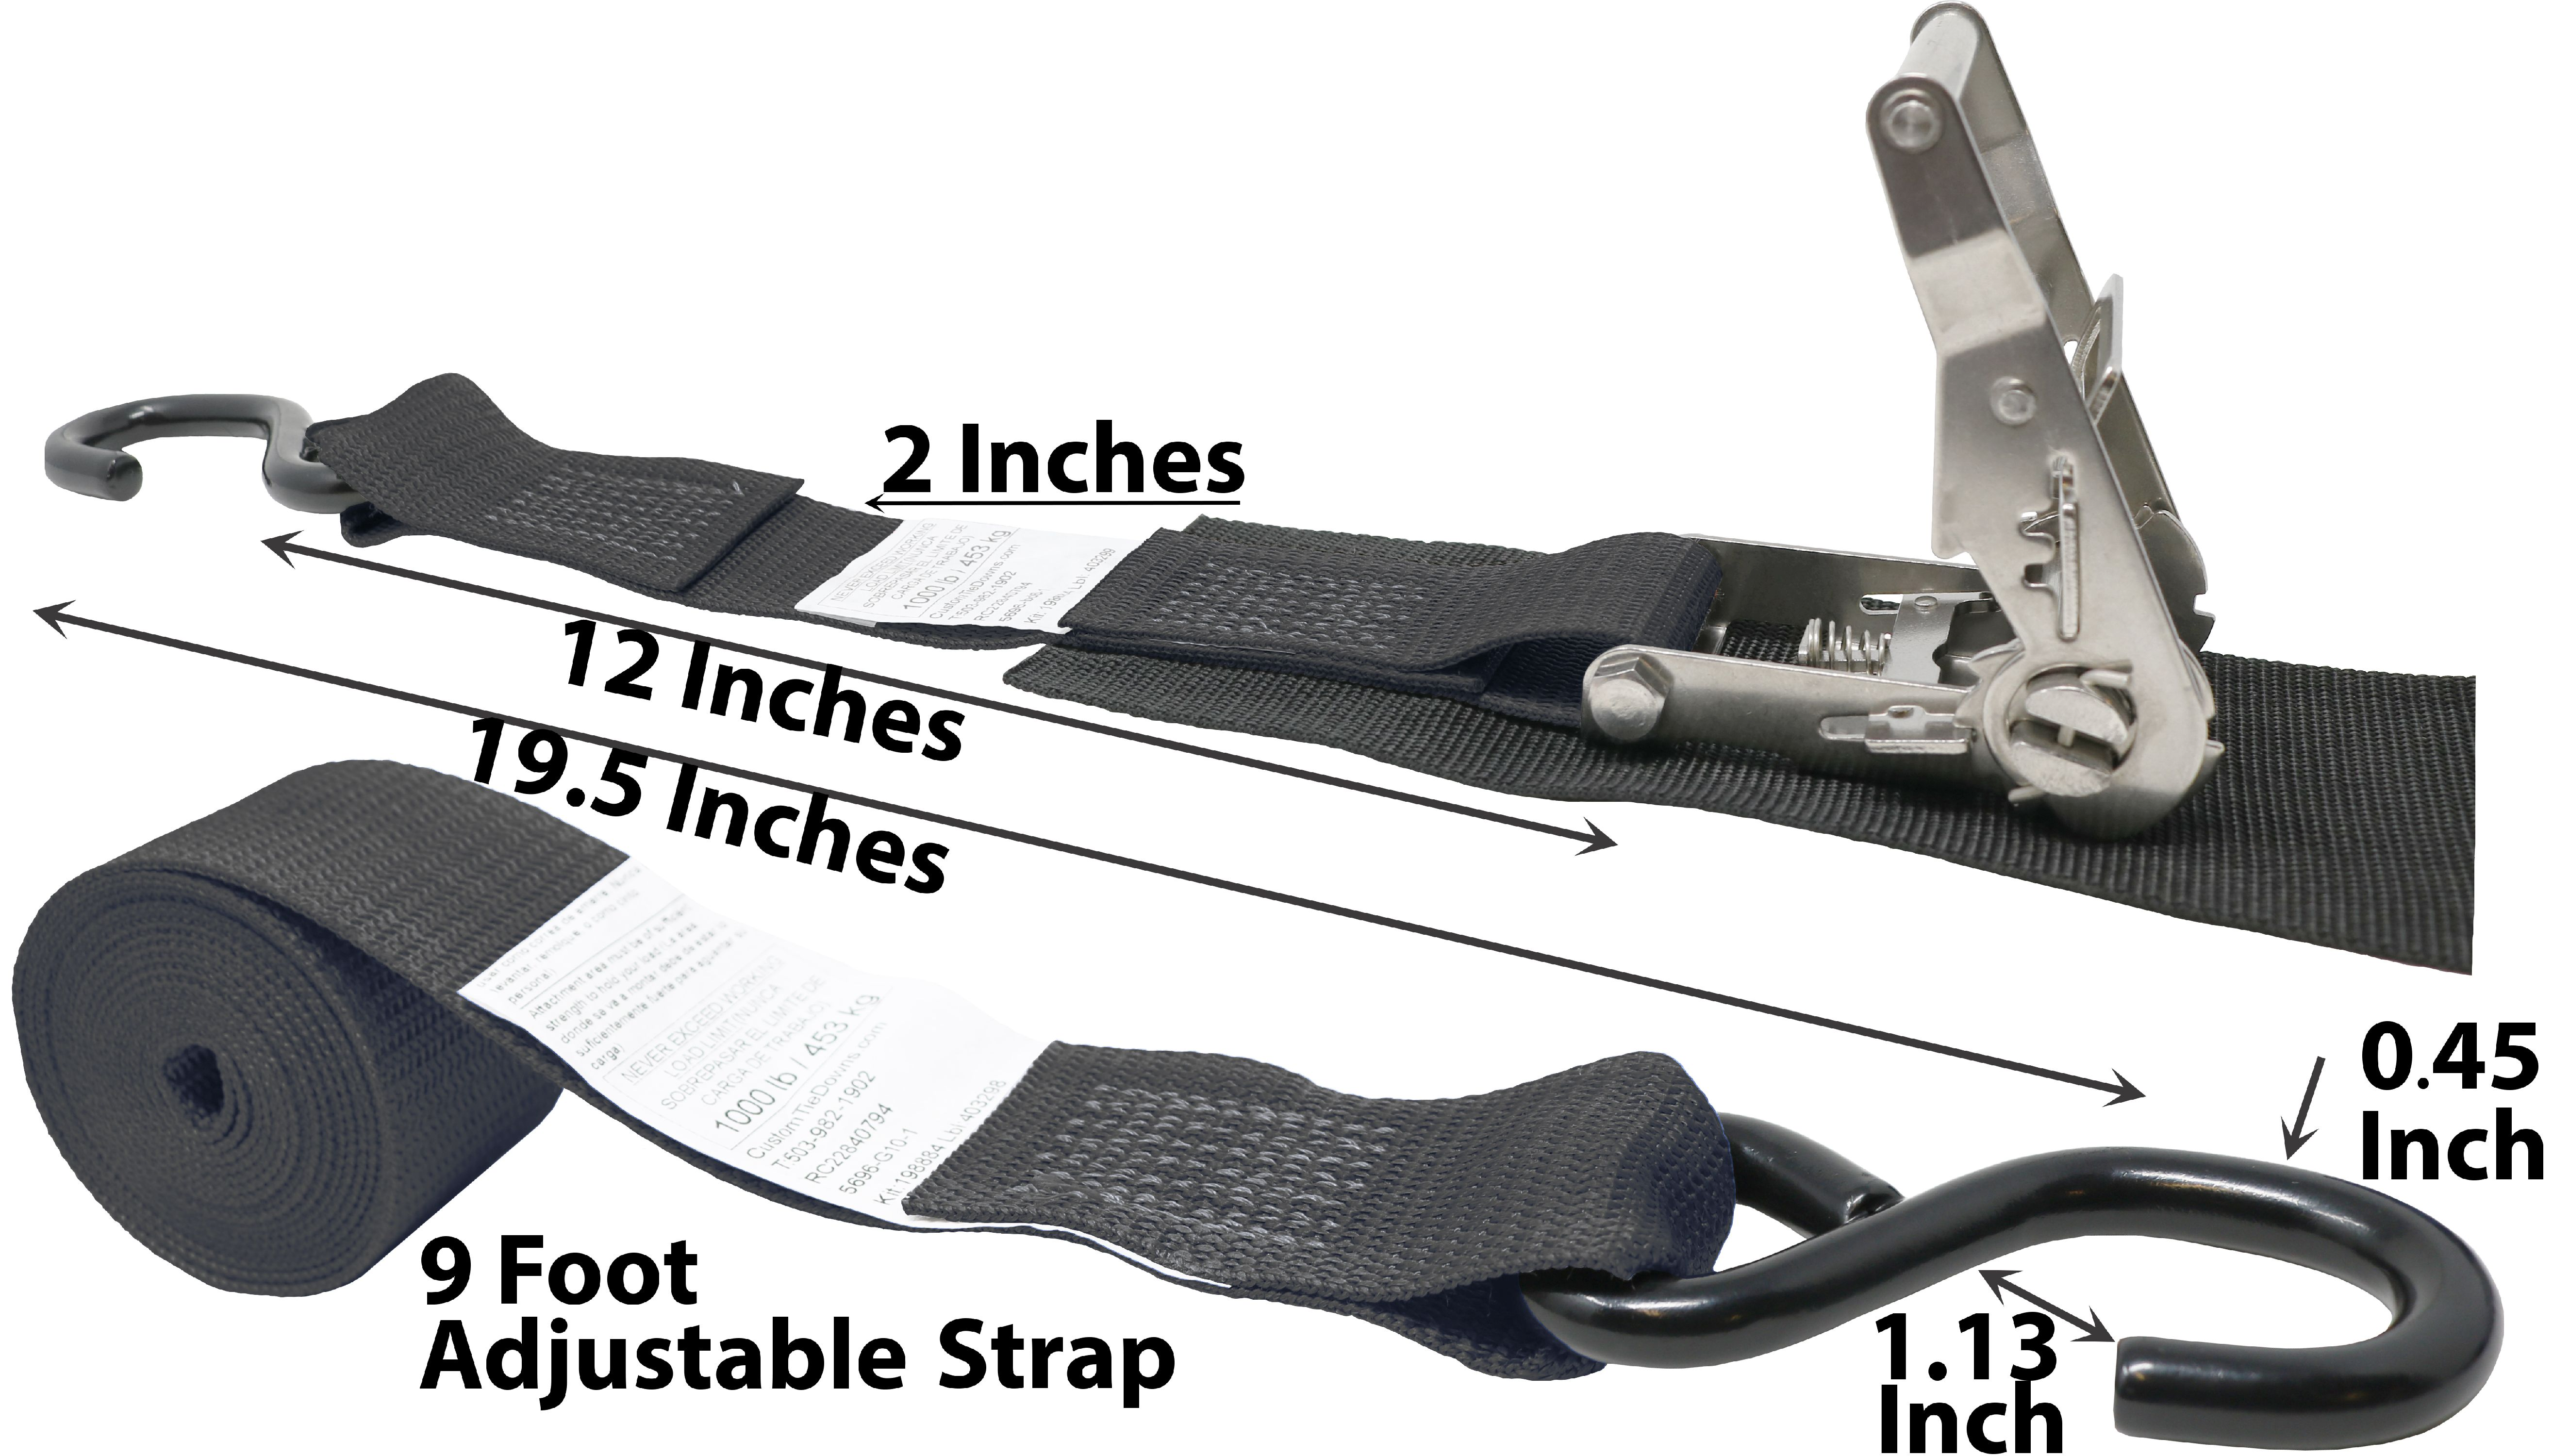 CustomTieDowns 1 Inch x 16 Foot Replacement Ratchet Strap Black Stainless Steel S Hook On One End.